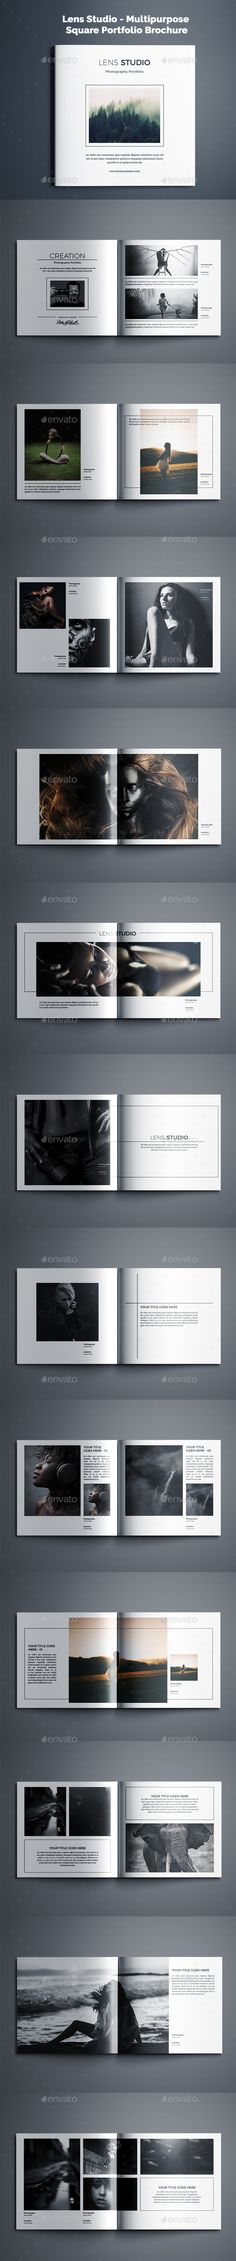 Lens Studio  Multipurpose Square Portfolio Brochure — InDesign INDD #20x20 #grey • Download ➝ https://graphicriver.net/item/lens-studio-multipurpose-square-portfolio-brochure/19231084?ref=pxcr